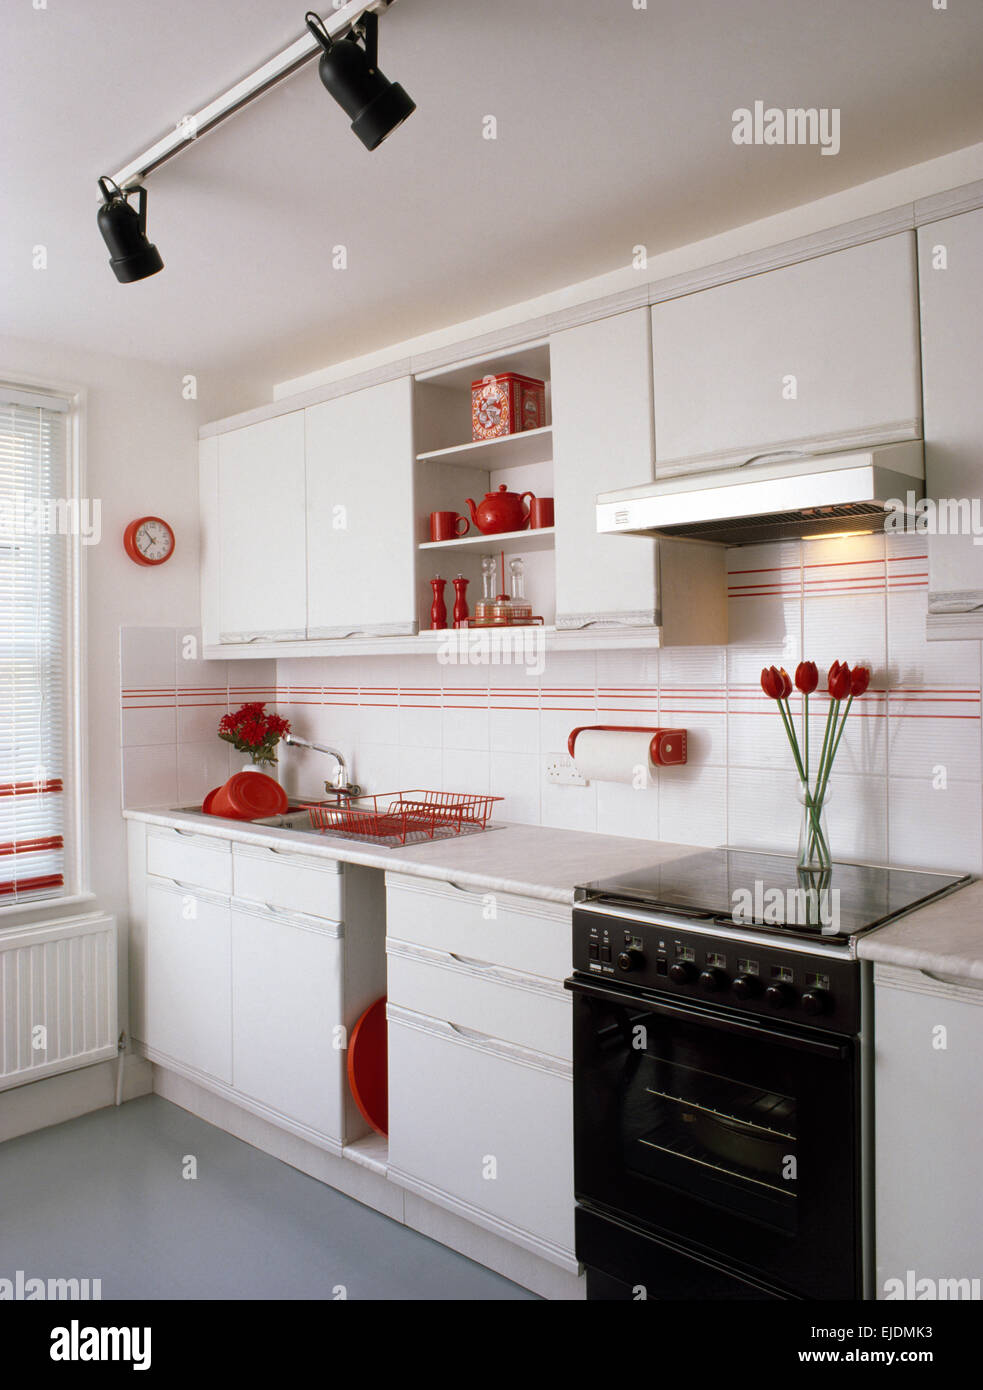 Black Gas Oven In White Eighties Kitchen With Red Detailing And